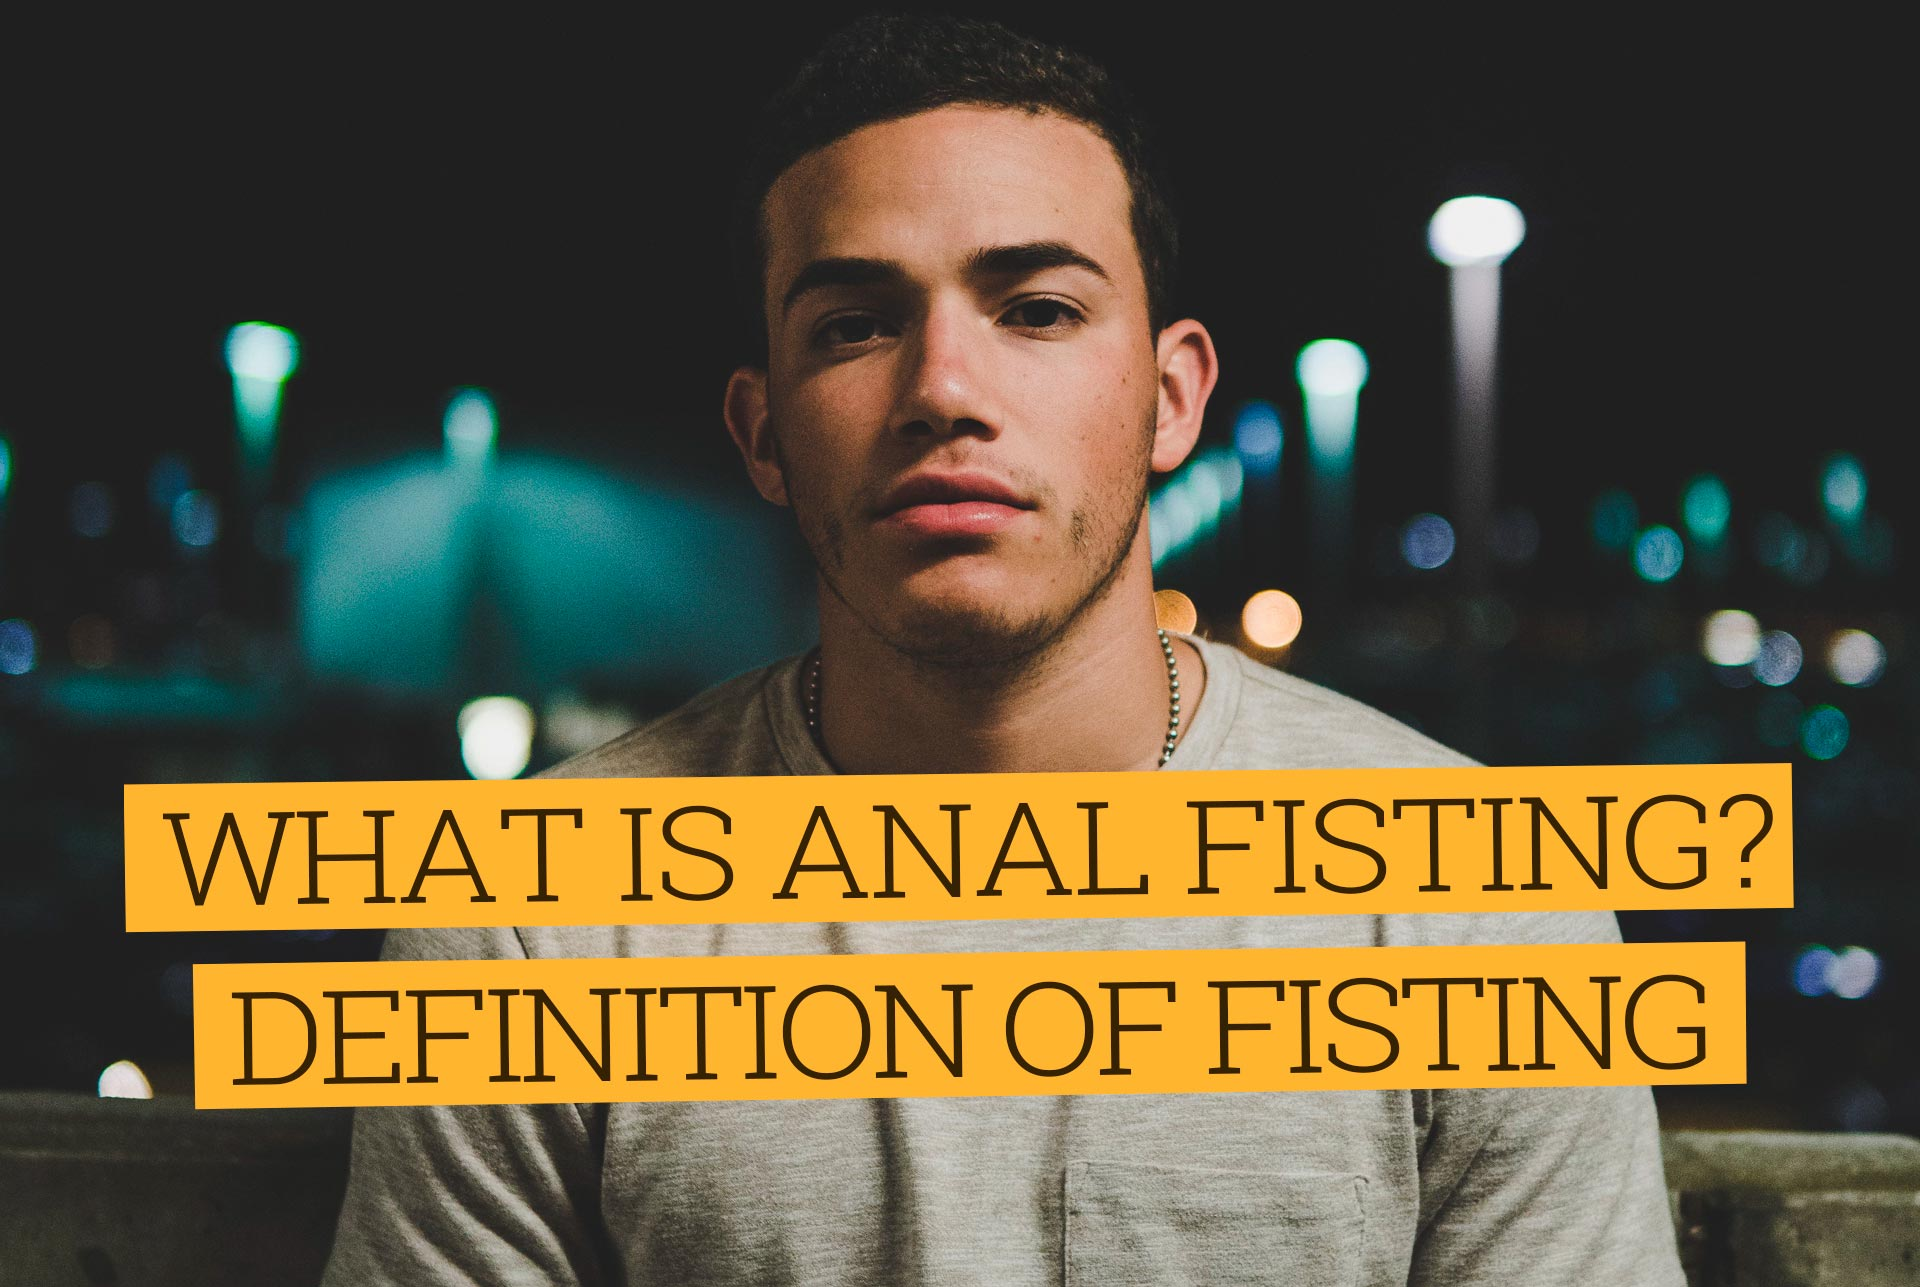 Definition of Fisting